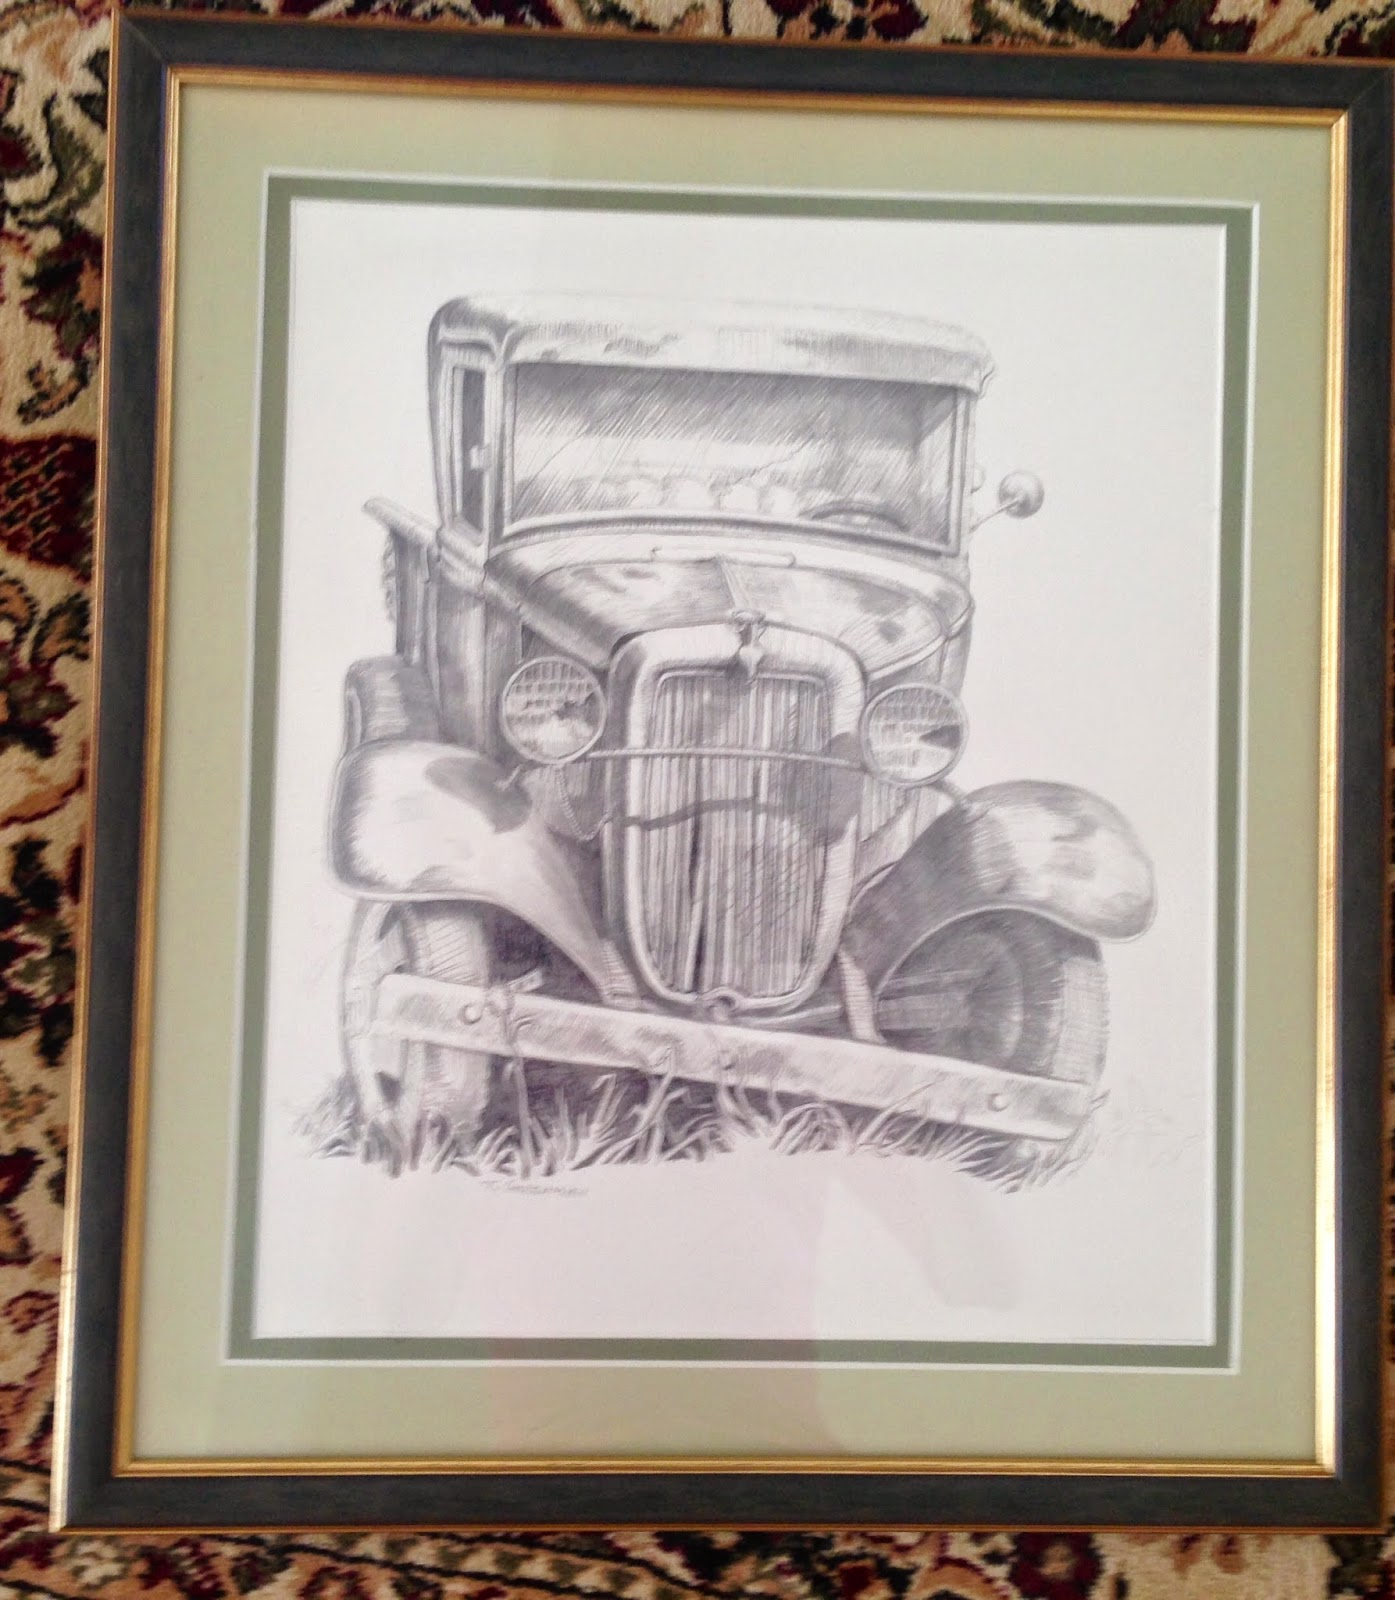 Laurel dr estate sale framed pencil drawings